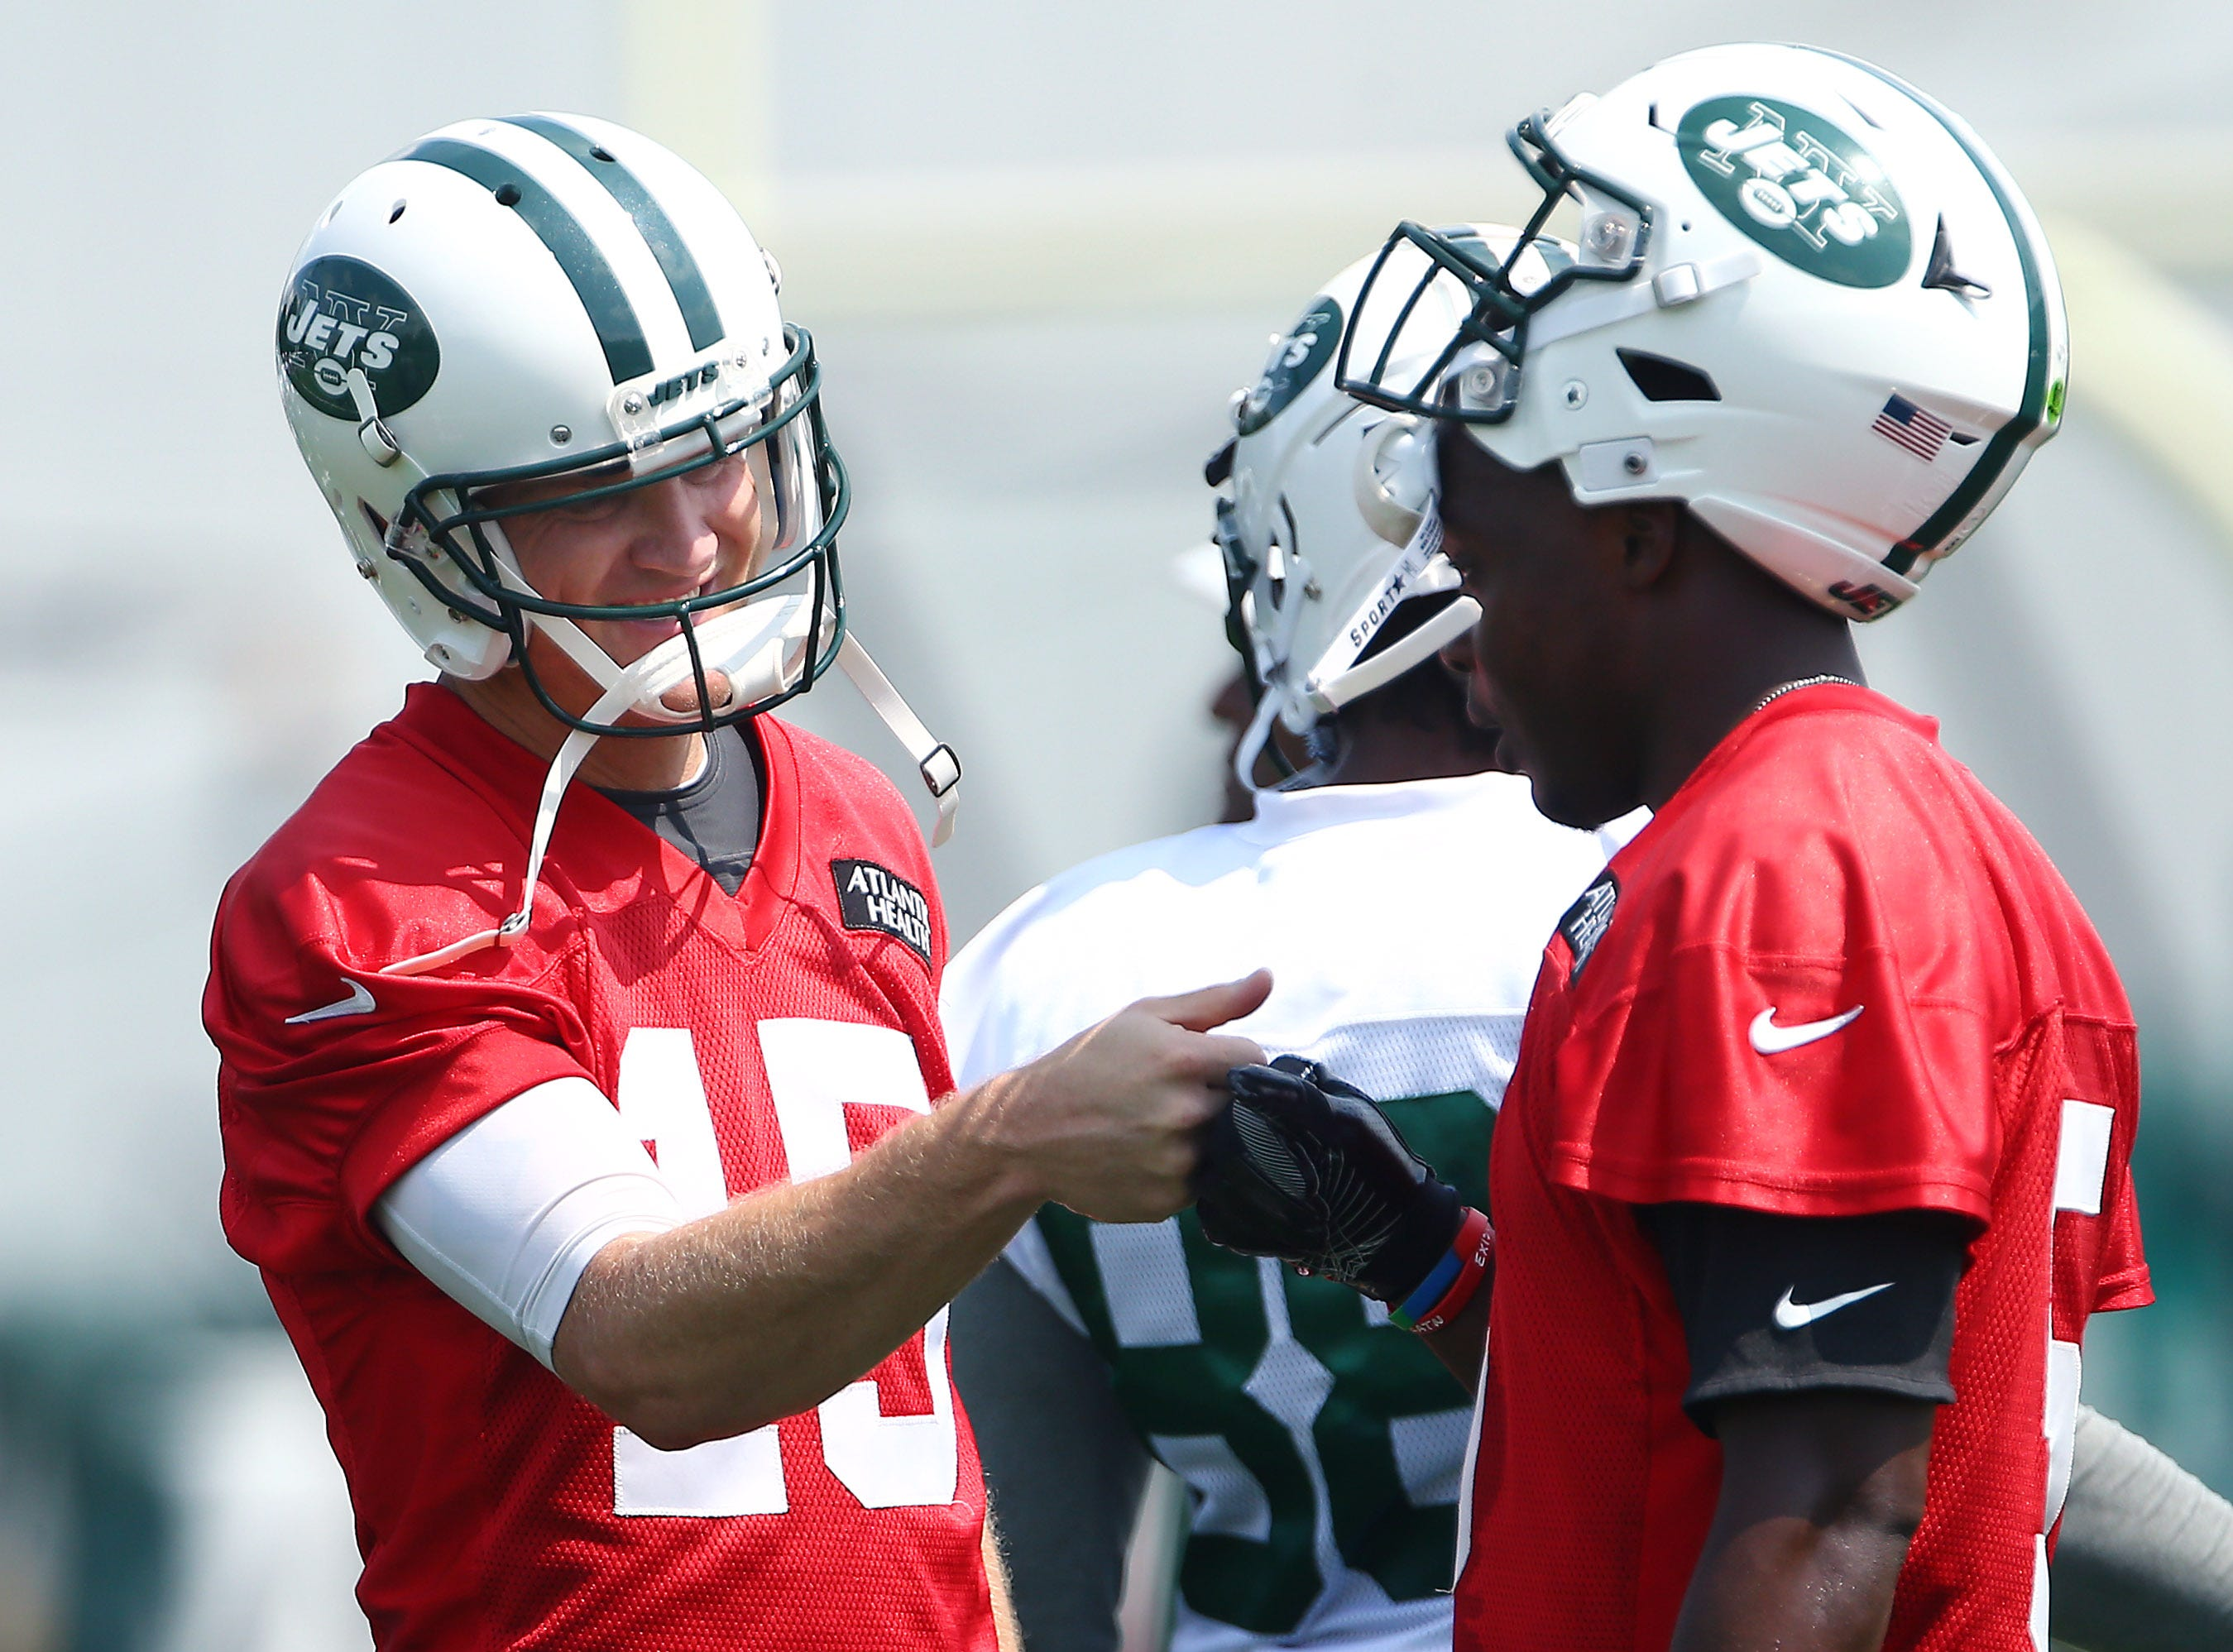 New York Jets Josh McCown gives a fist bump to fellow quarterback Teddy Bridgewater during the Jets opening day of training camp at the Atlantic Health Training Center in Florham Park. July 28, 2018. Morristown, NJ